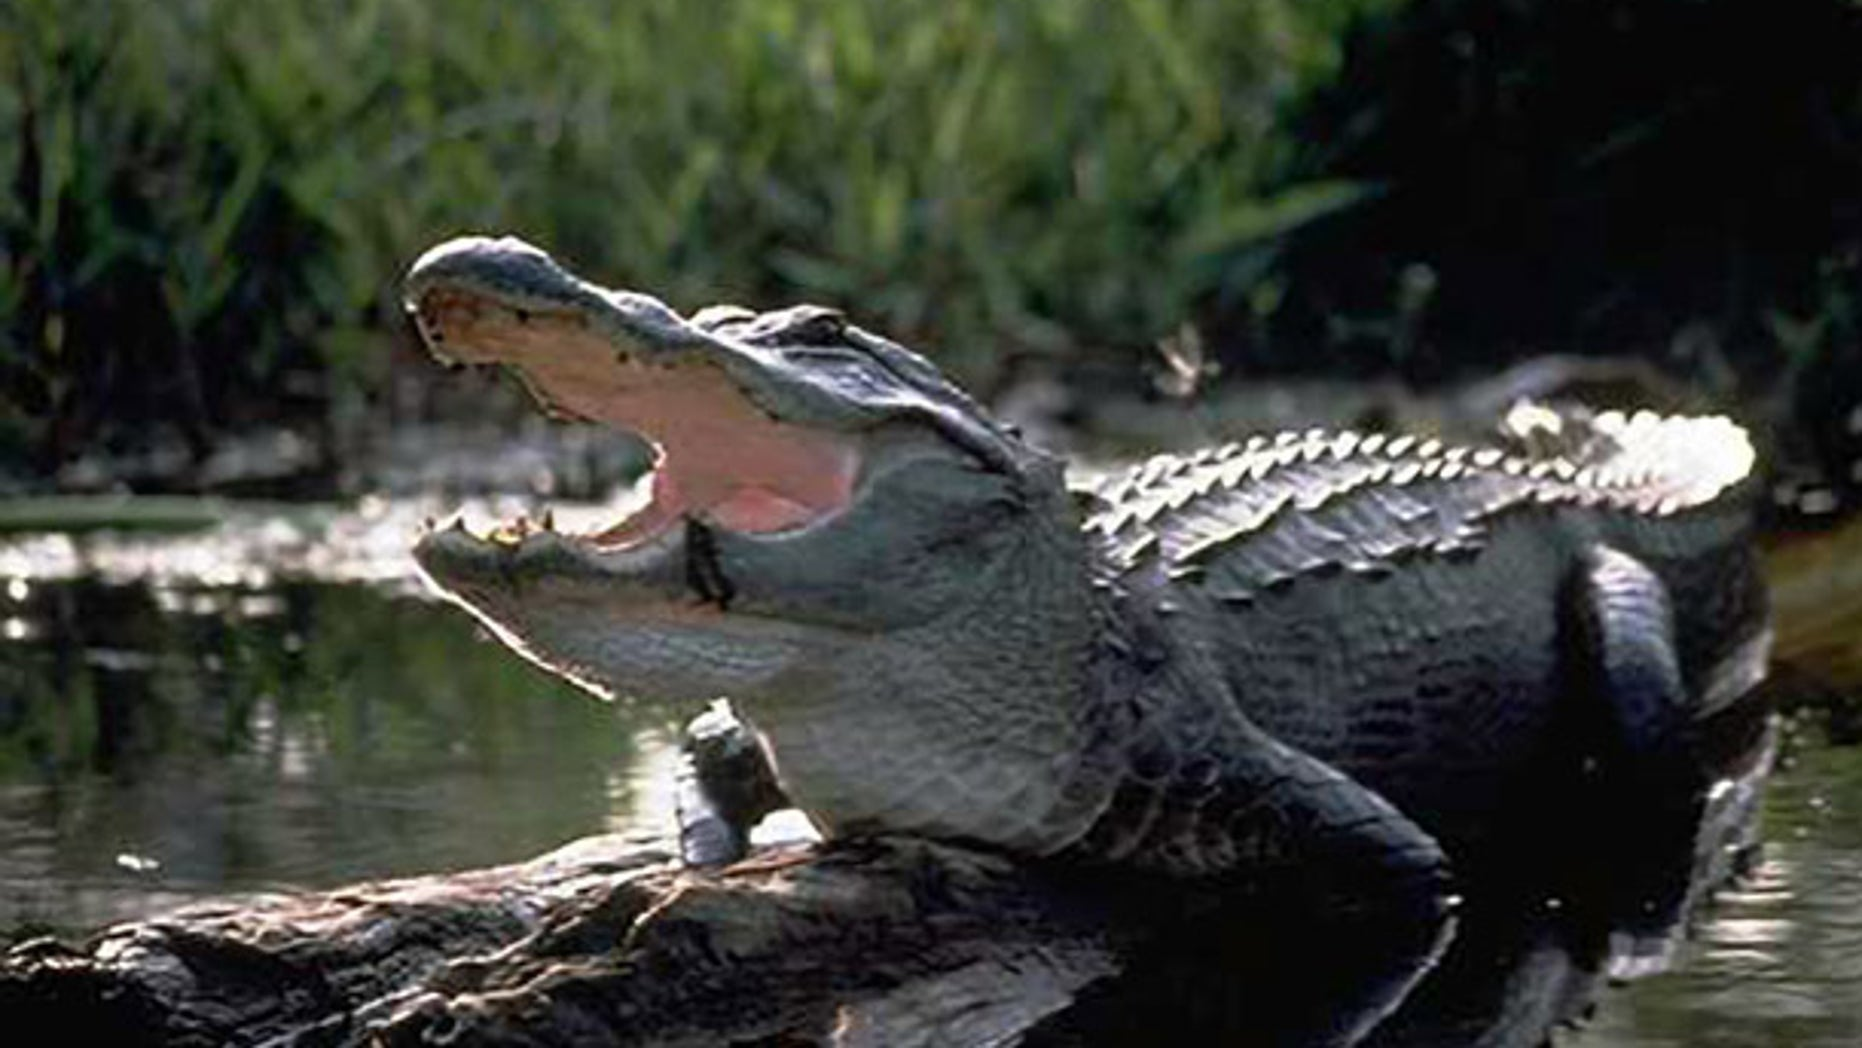 The development has 151 lagoons, and who knows how many gators?